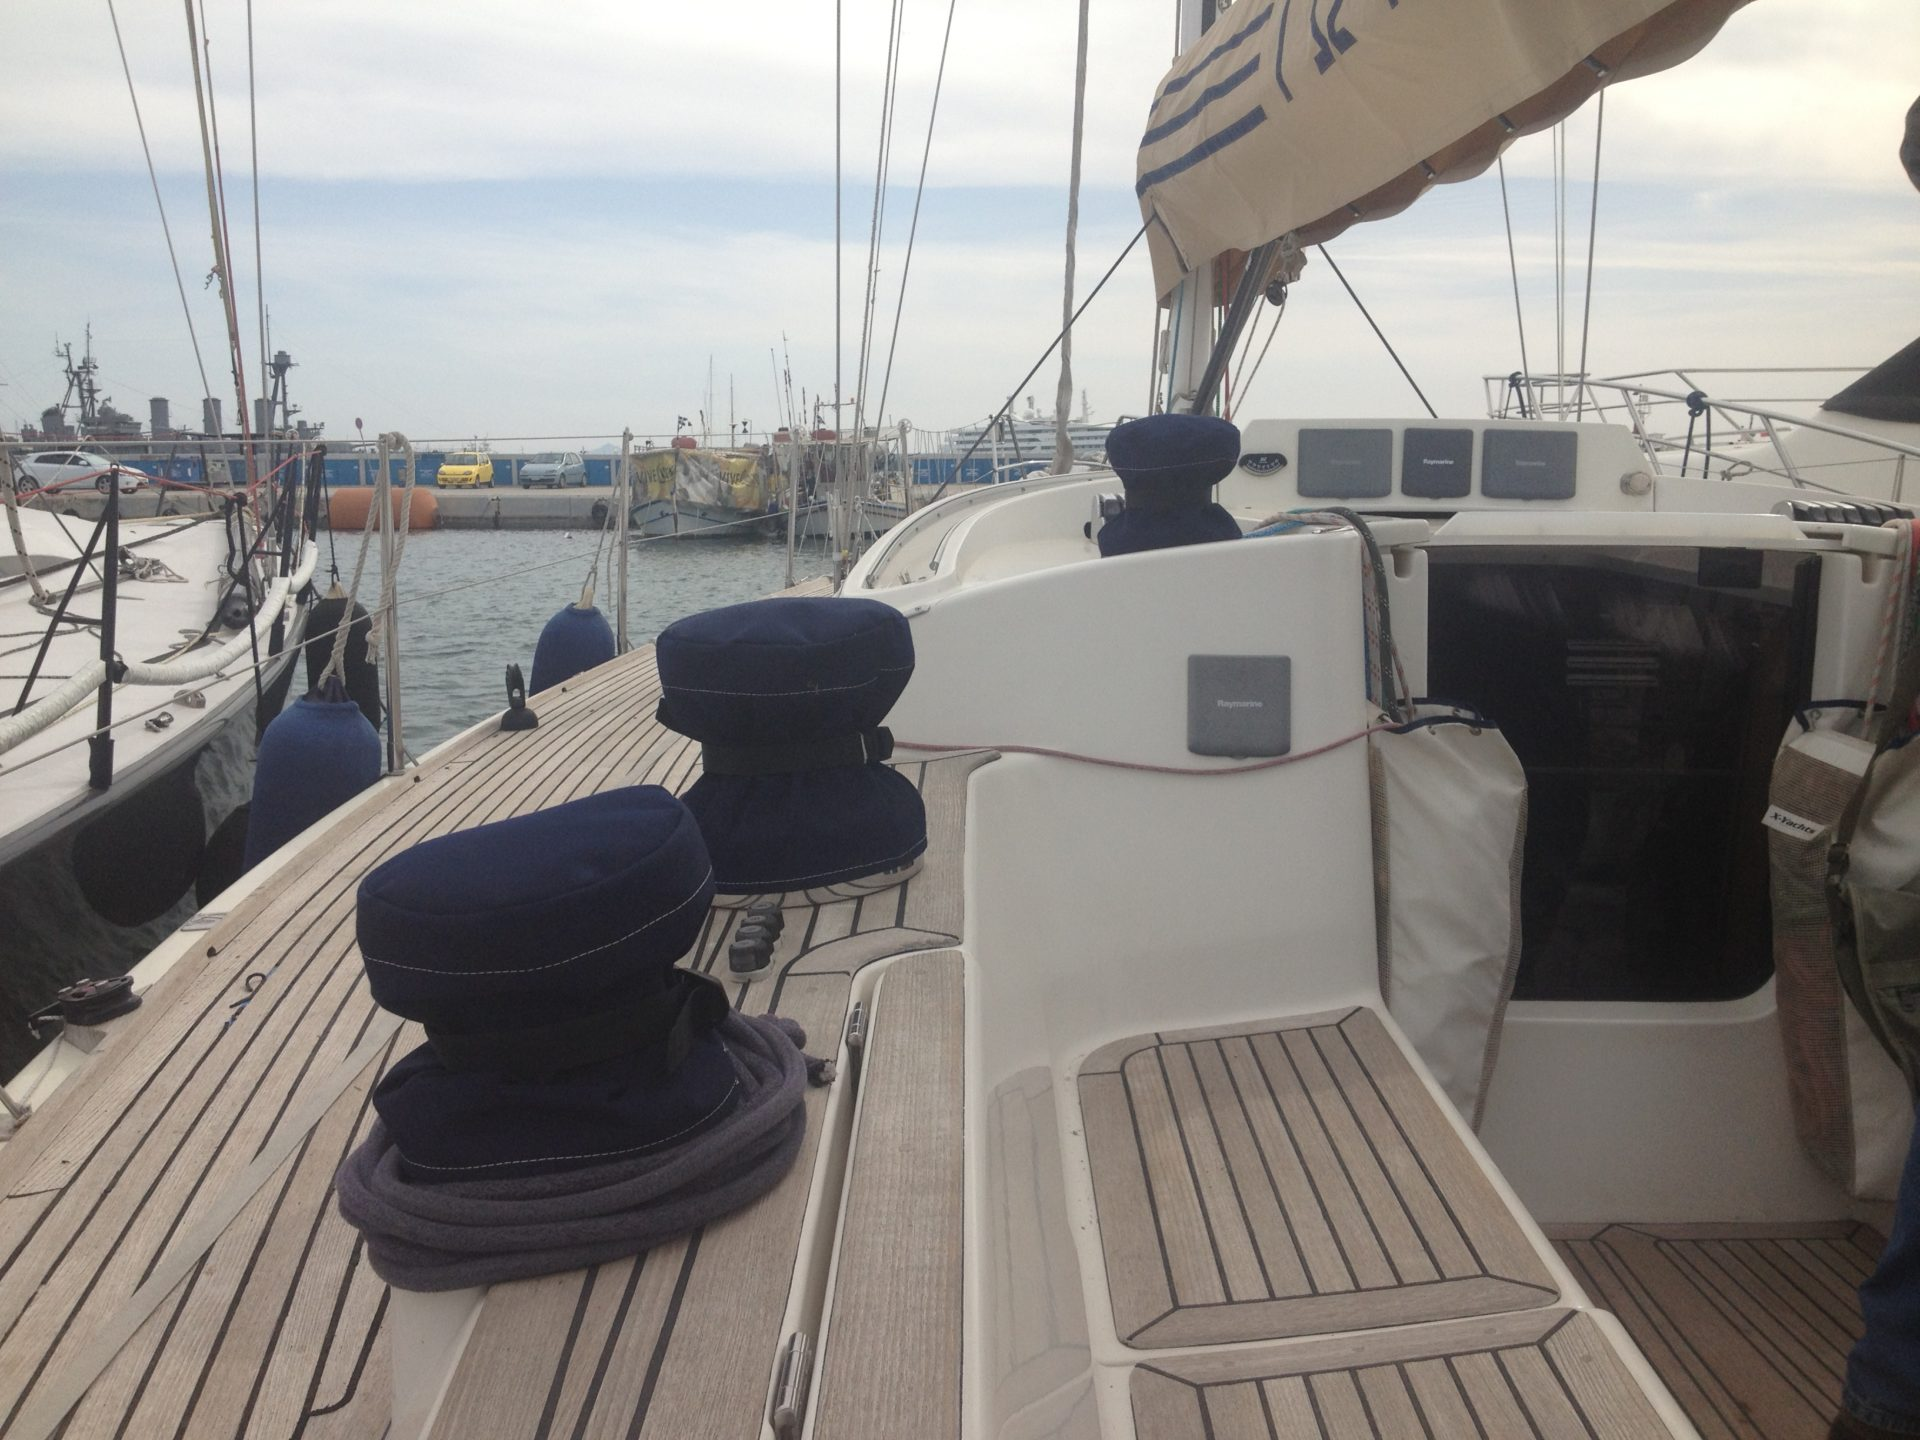 hight resolution of hull number 67 with carbon mast boom also available second aluminum mast and rigging very good condition